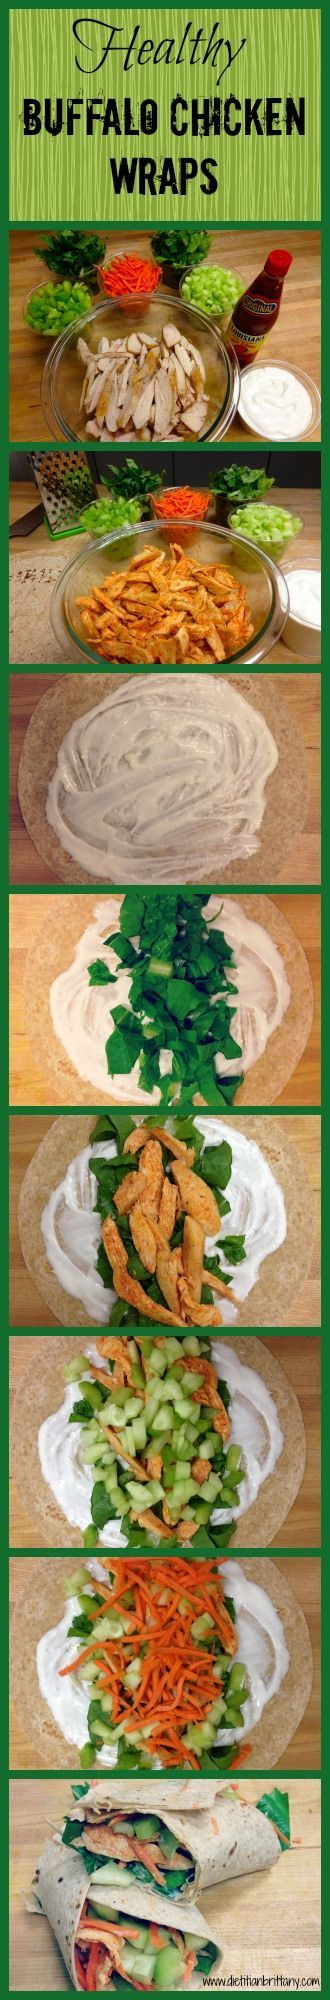 Healthy Buffalo Chicken Wraps.  www.dietitianbrittany.com